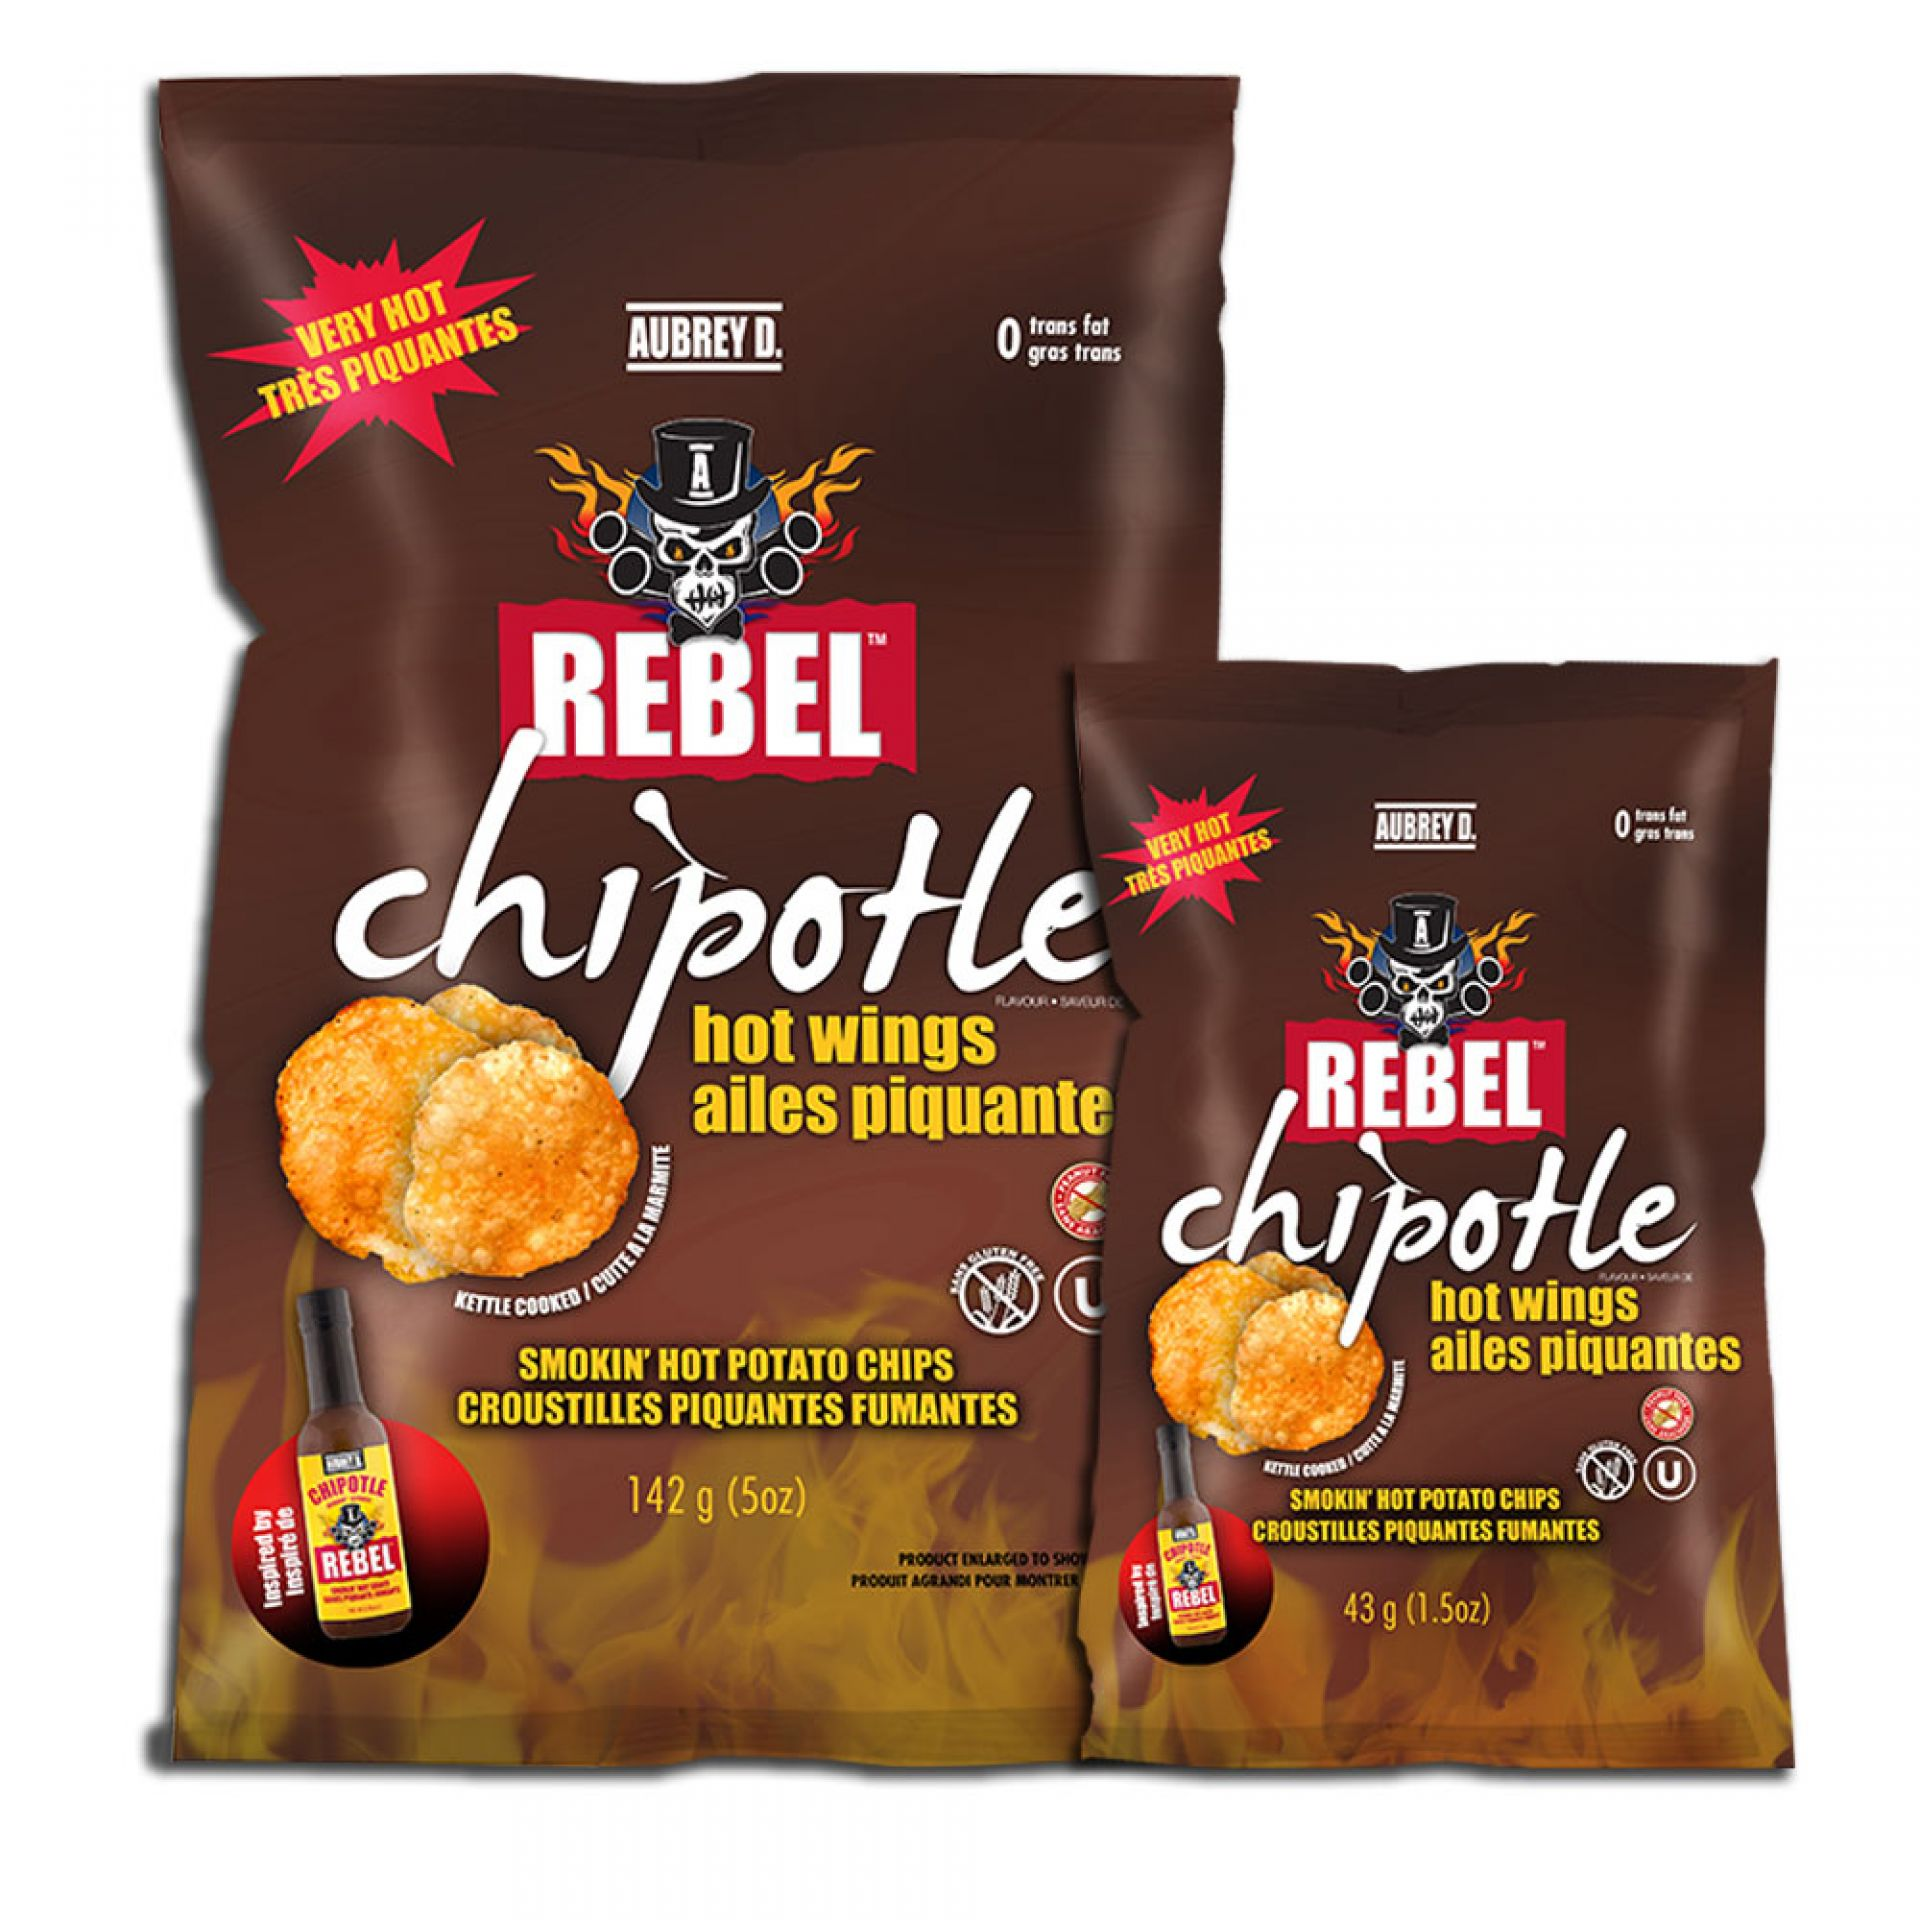 Rebel Chipotle Hot Wings - Hot (43g)